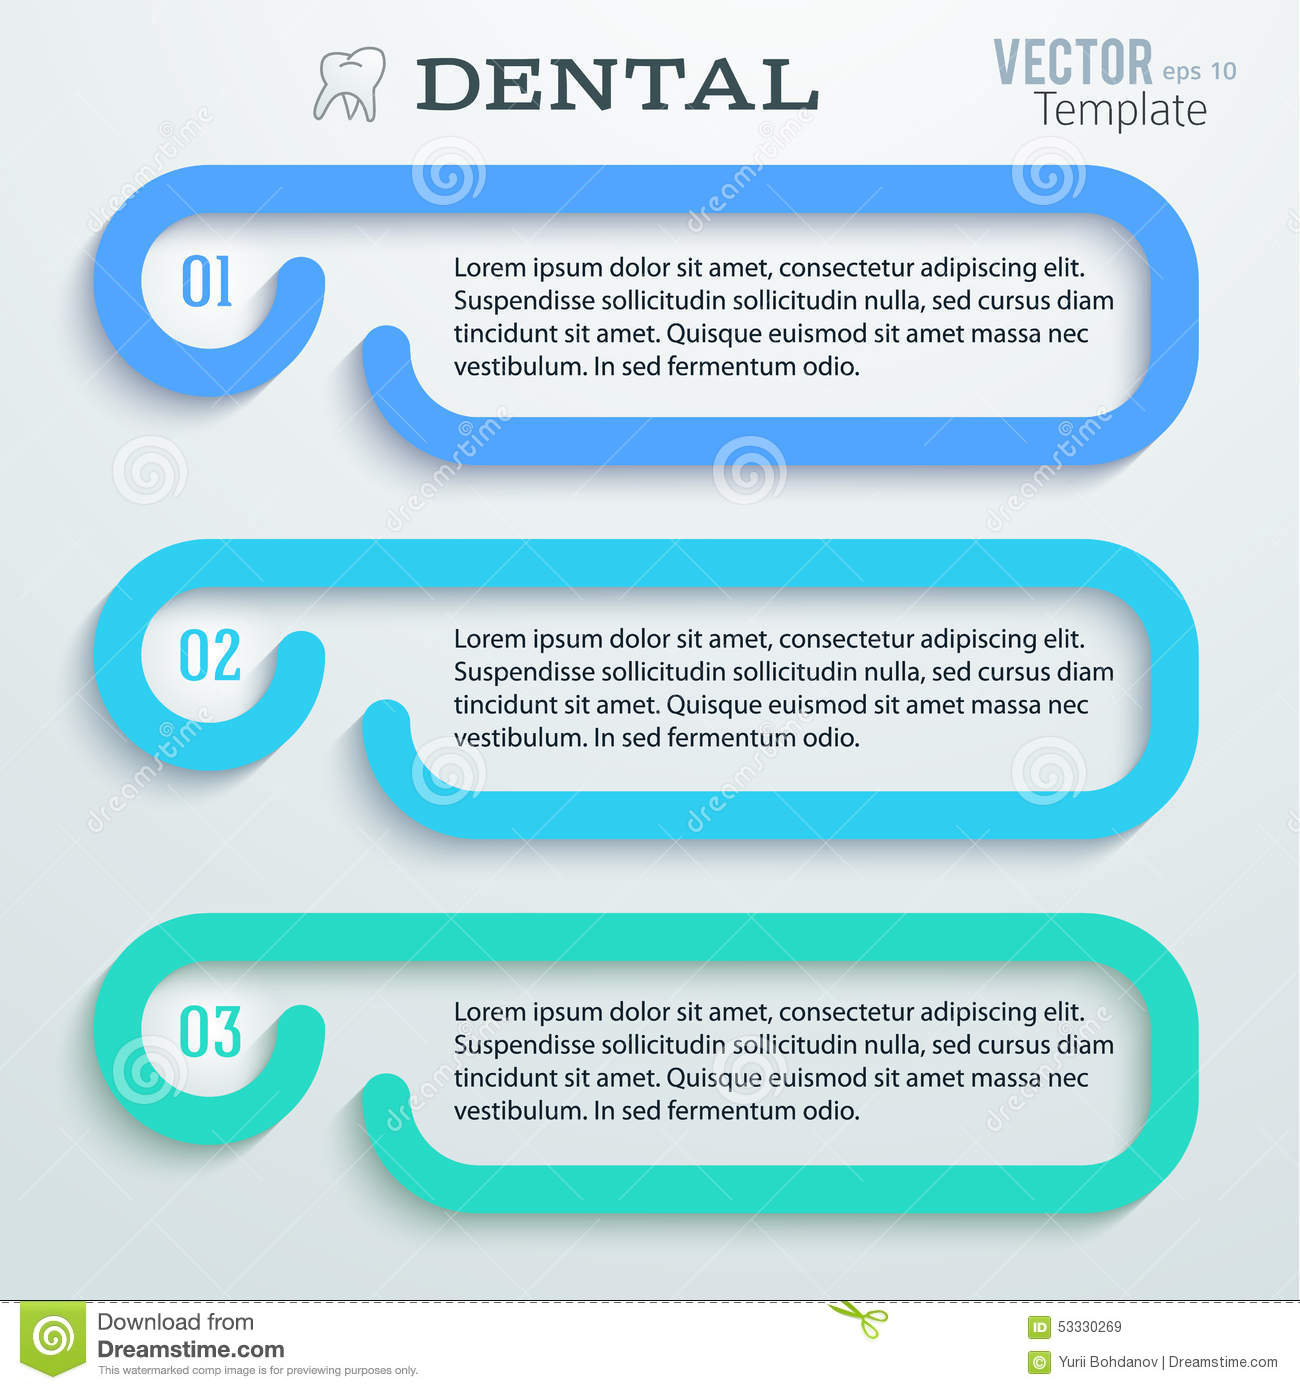 dental-horizontal-banner-template-toothpaste-abstract-background-style-info-graphics-medical-concept-care-stomatology-53330269.jpg